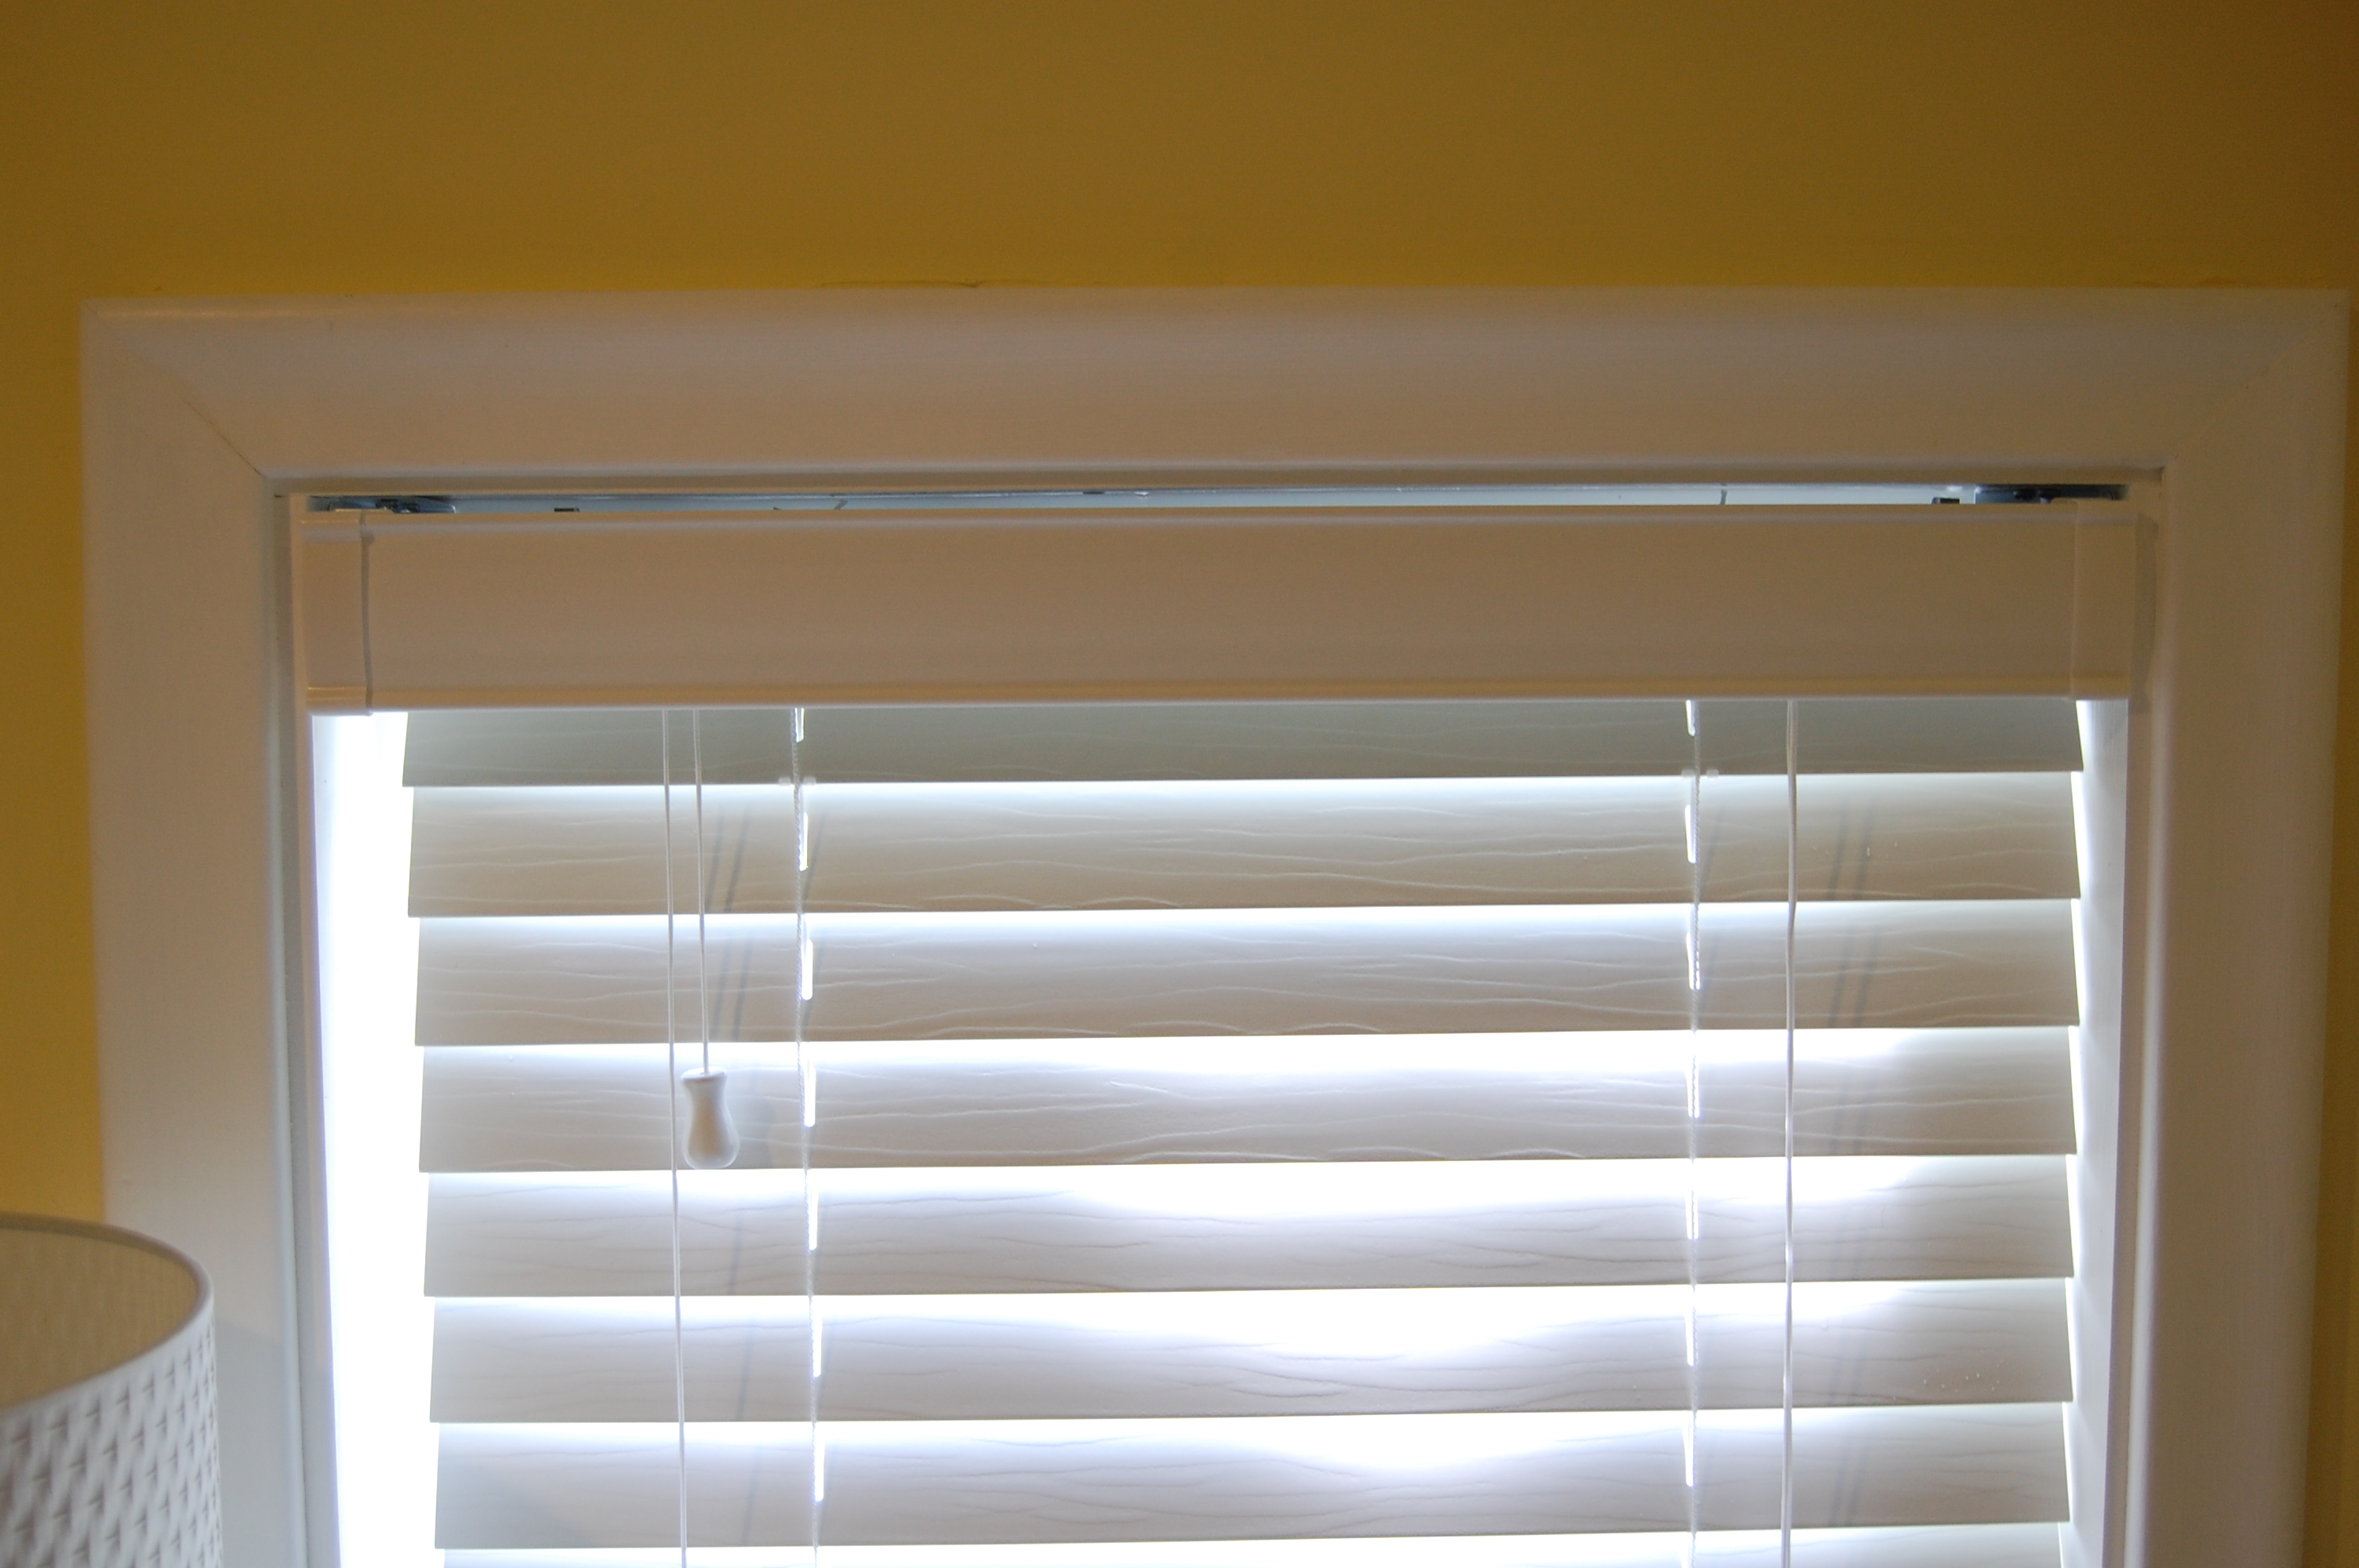 Excellent Menards Window Blinds for Best Window Blind Ideas: Menards Window Blinds | Riding Lawn Mowers At Menards | Menards Window Blinds